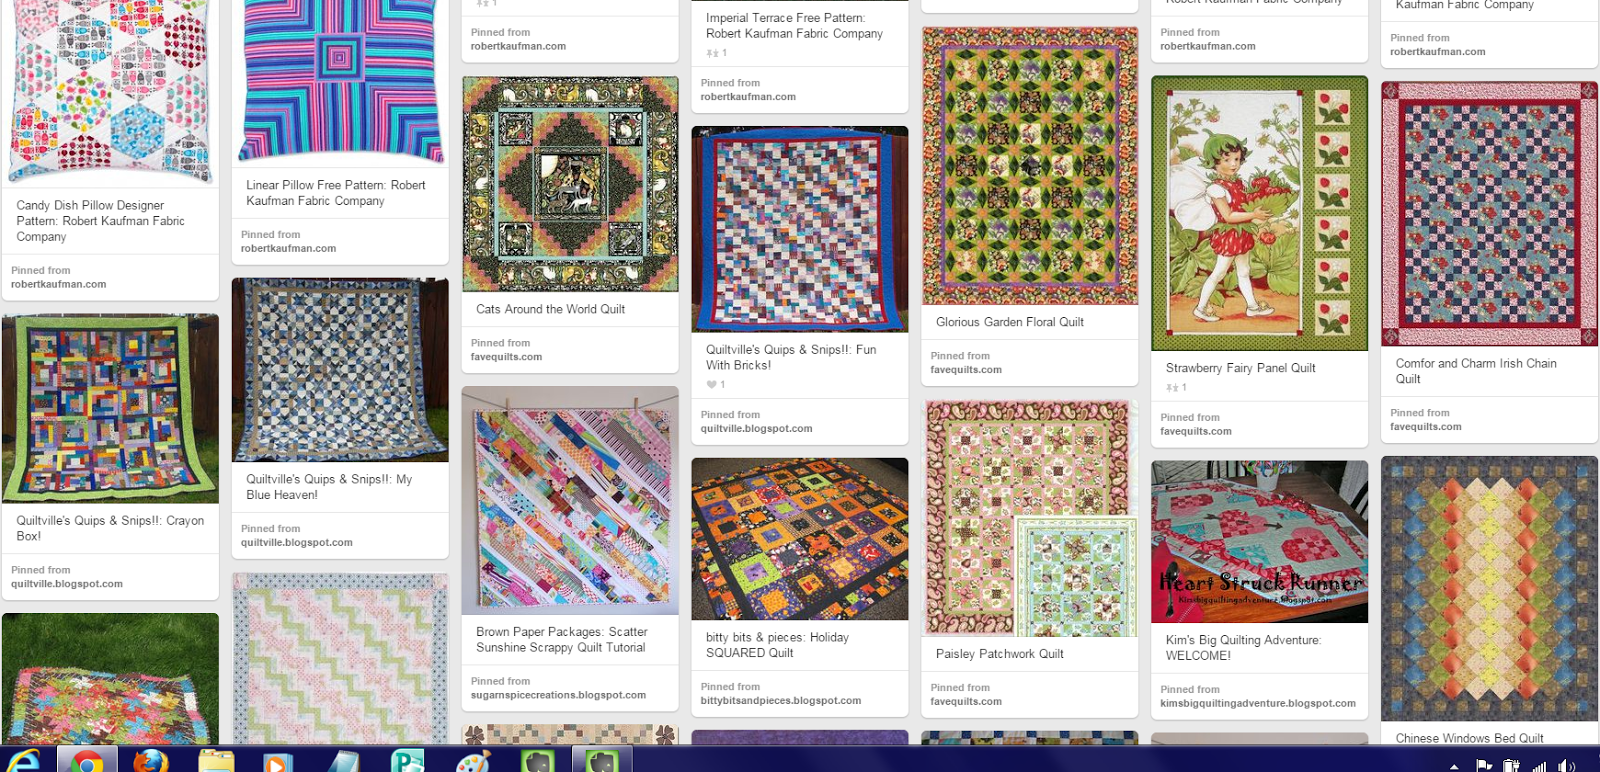 Quilting Tutorials, Video's, Patterns and How-To's Pinterest Board